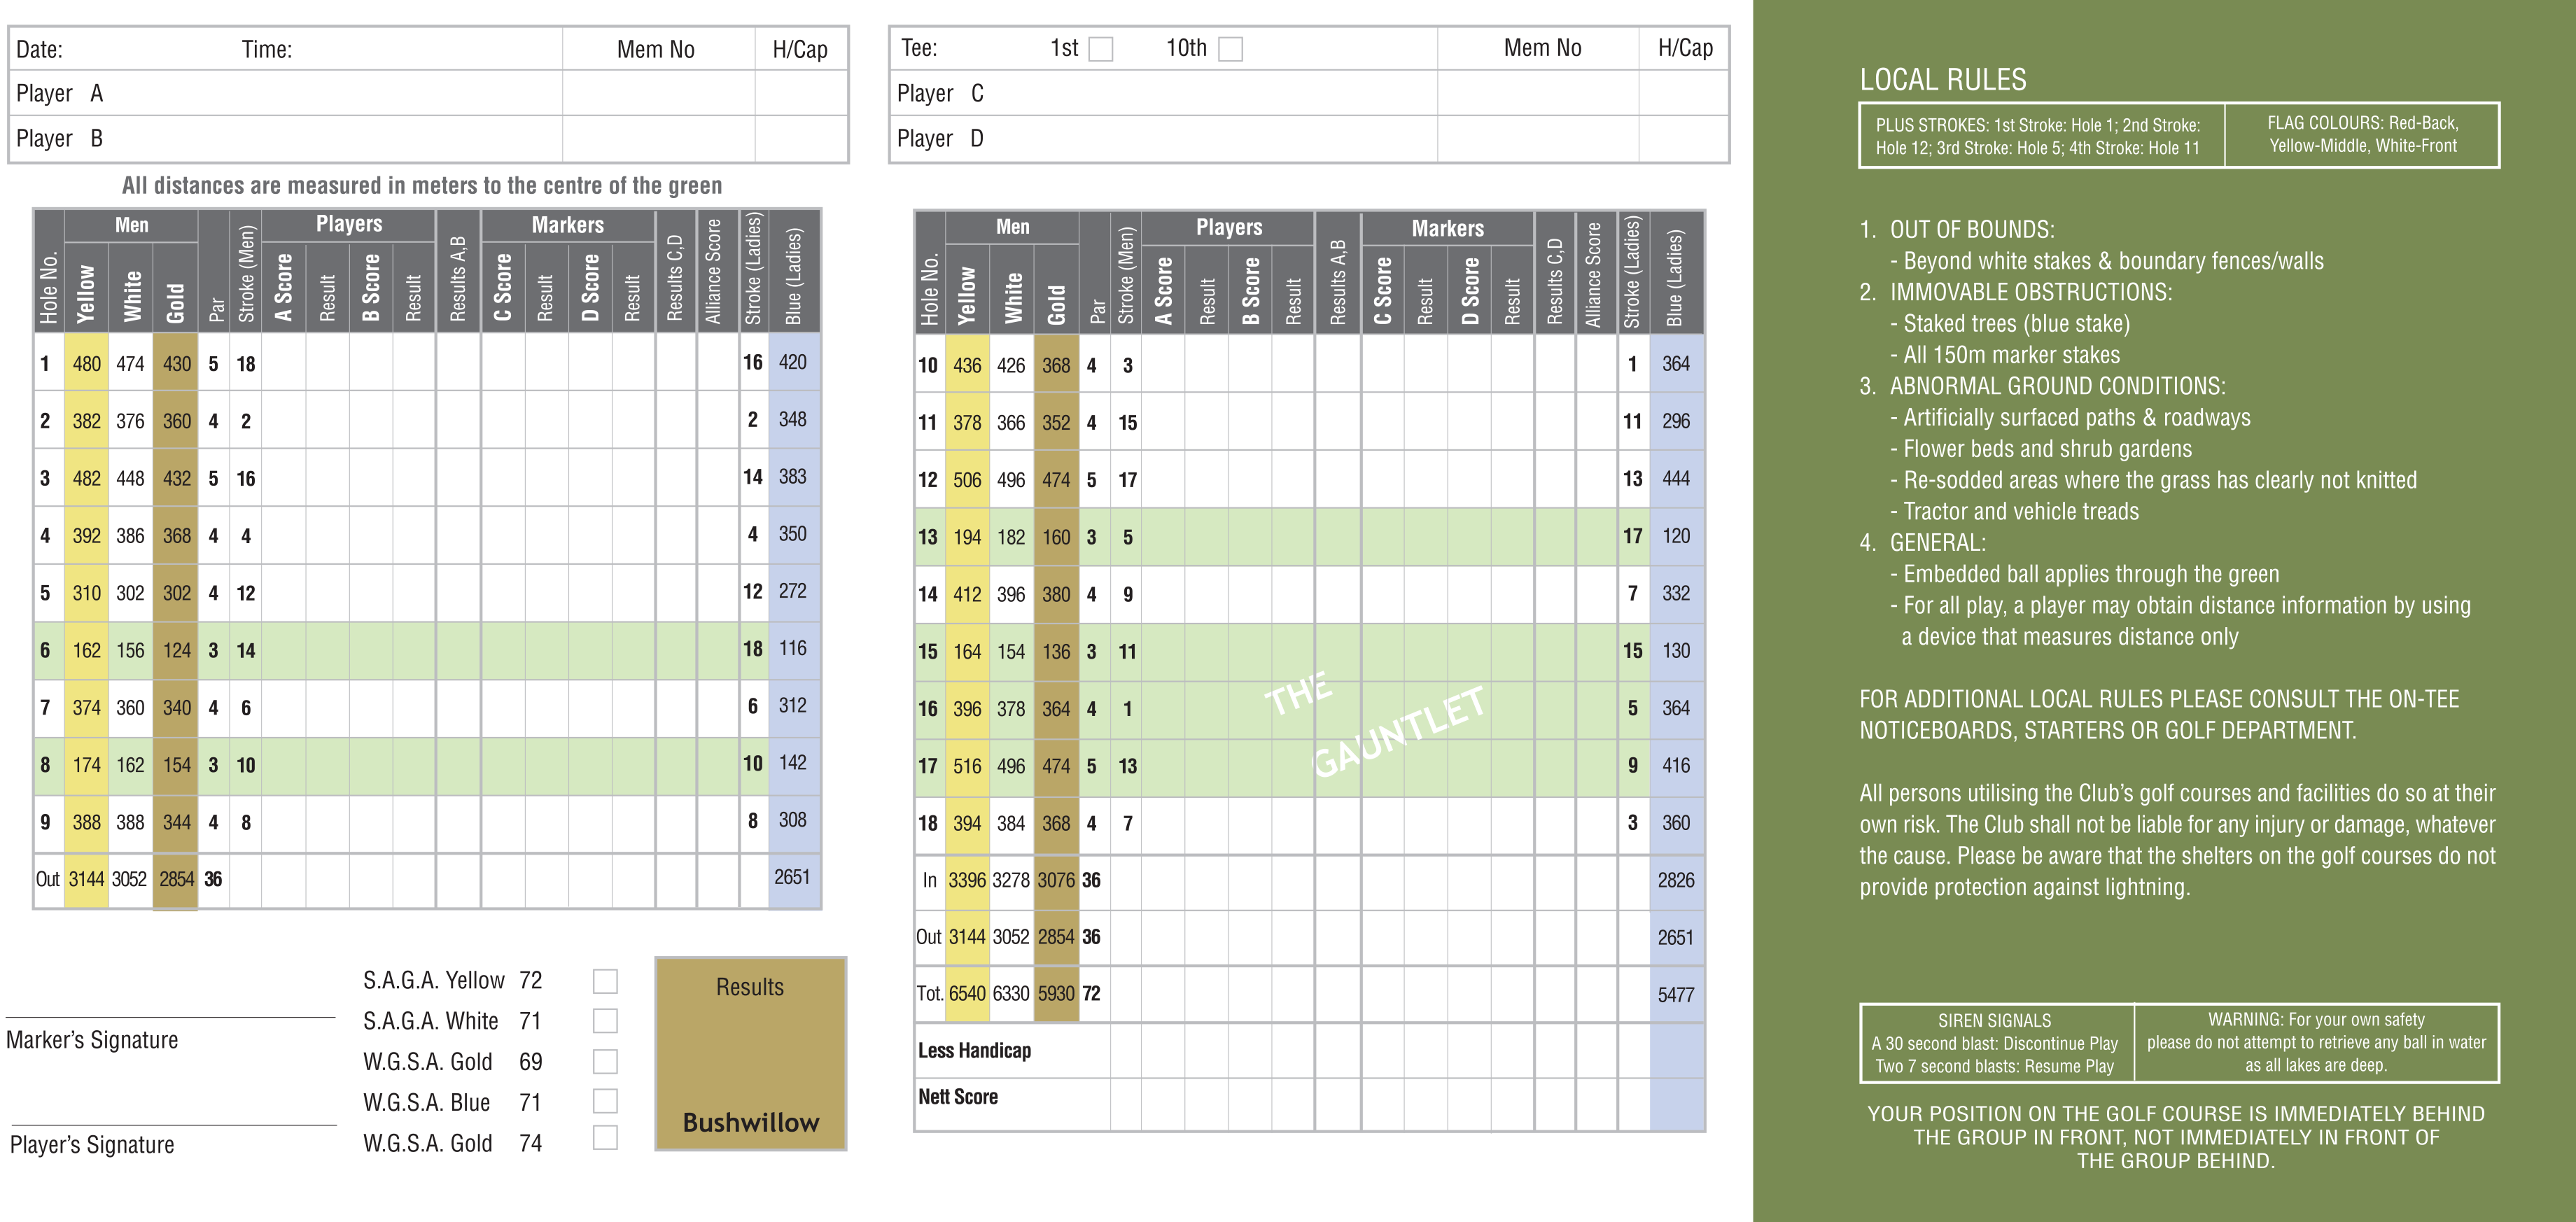 Bushwillow score card